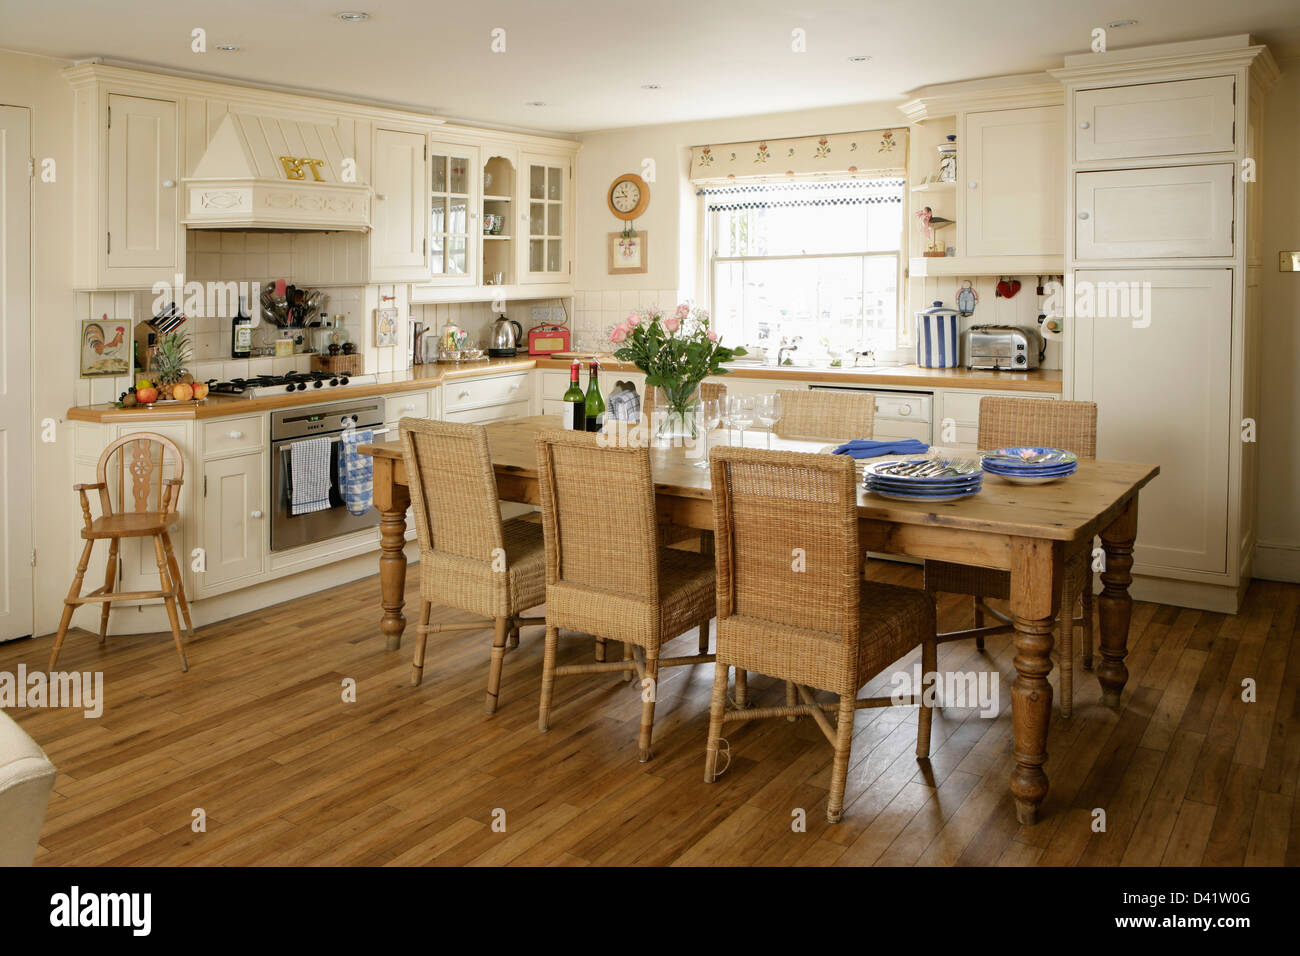 Tall country dining room sets - Stock Photo Tall Back Wicker Dining Chairs At Long Pine Table In Country Style Kitchen With Child S Wooden High Chair